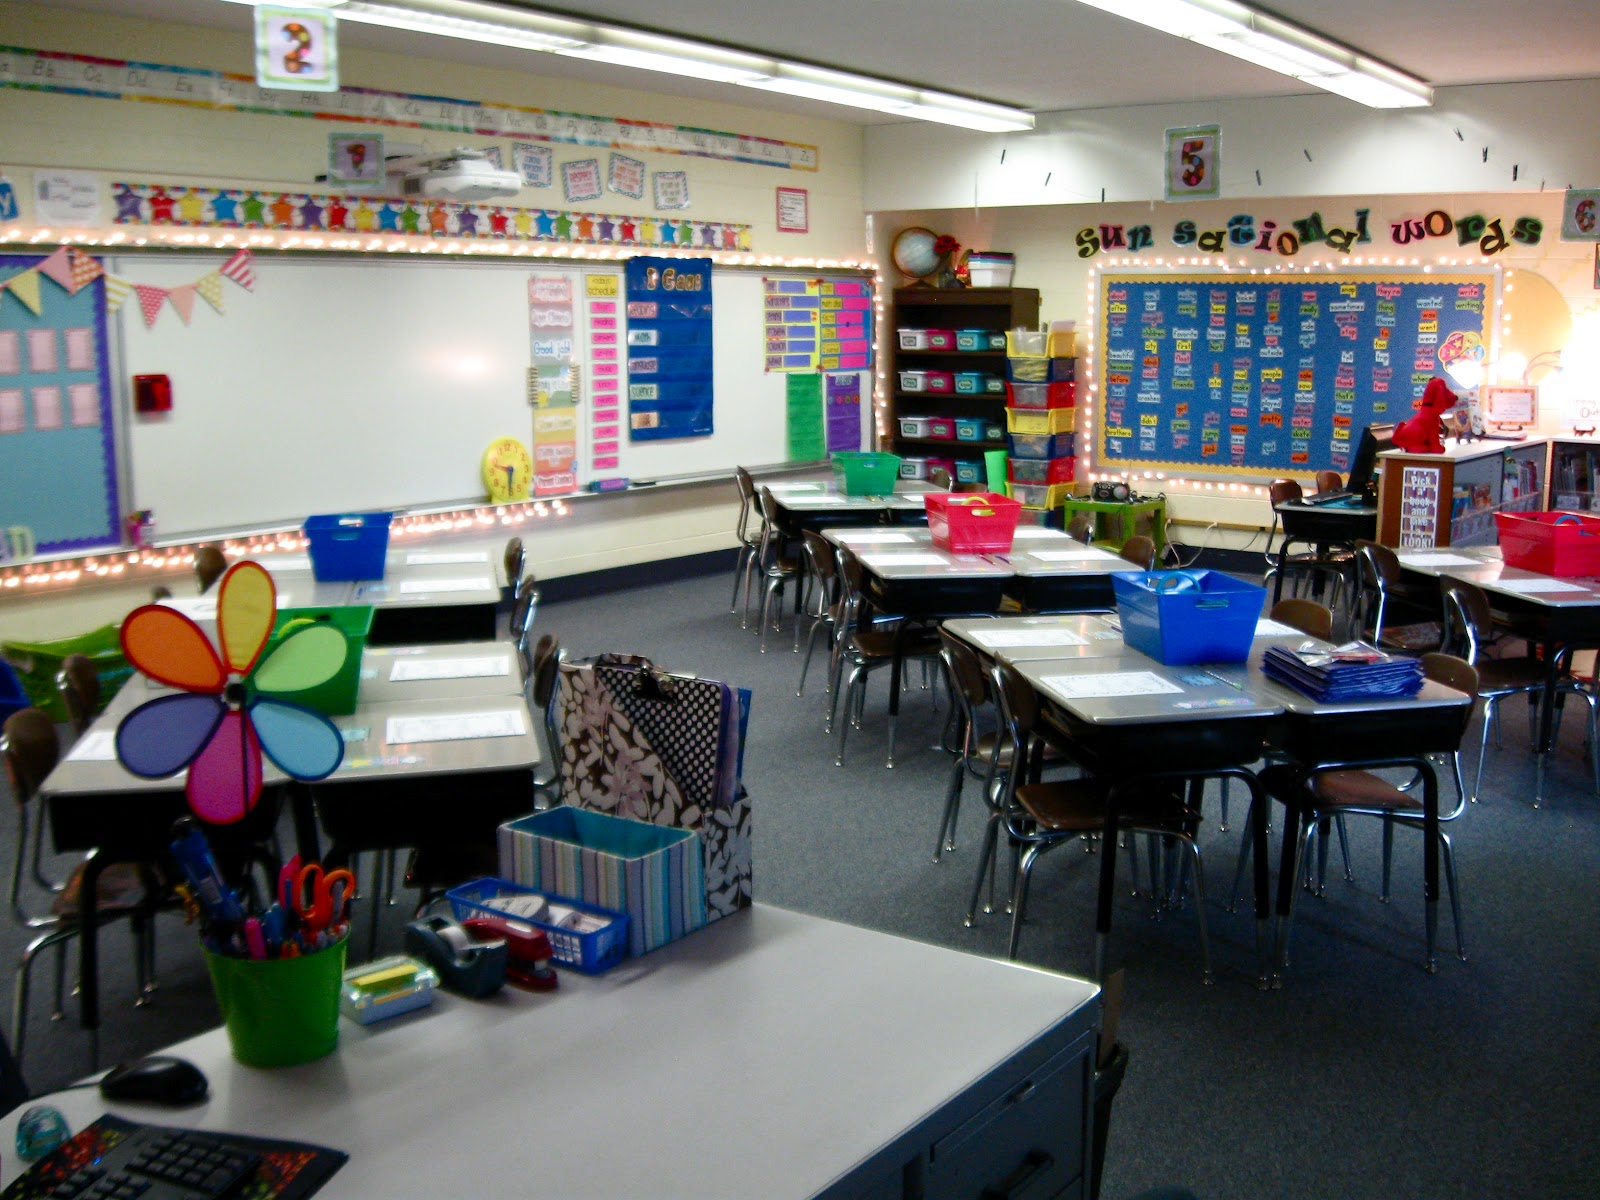 Elementary Classrooms Of The Future : Elementary school united states wikipedia